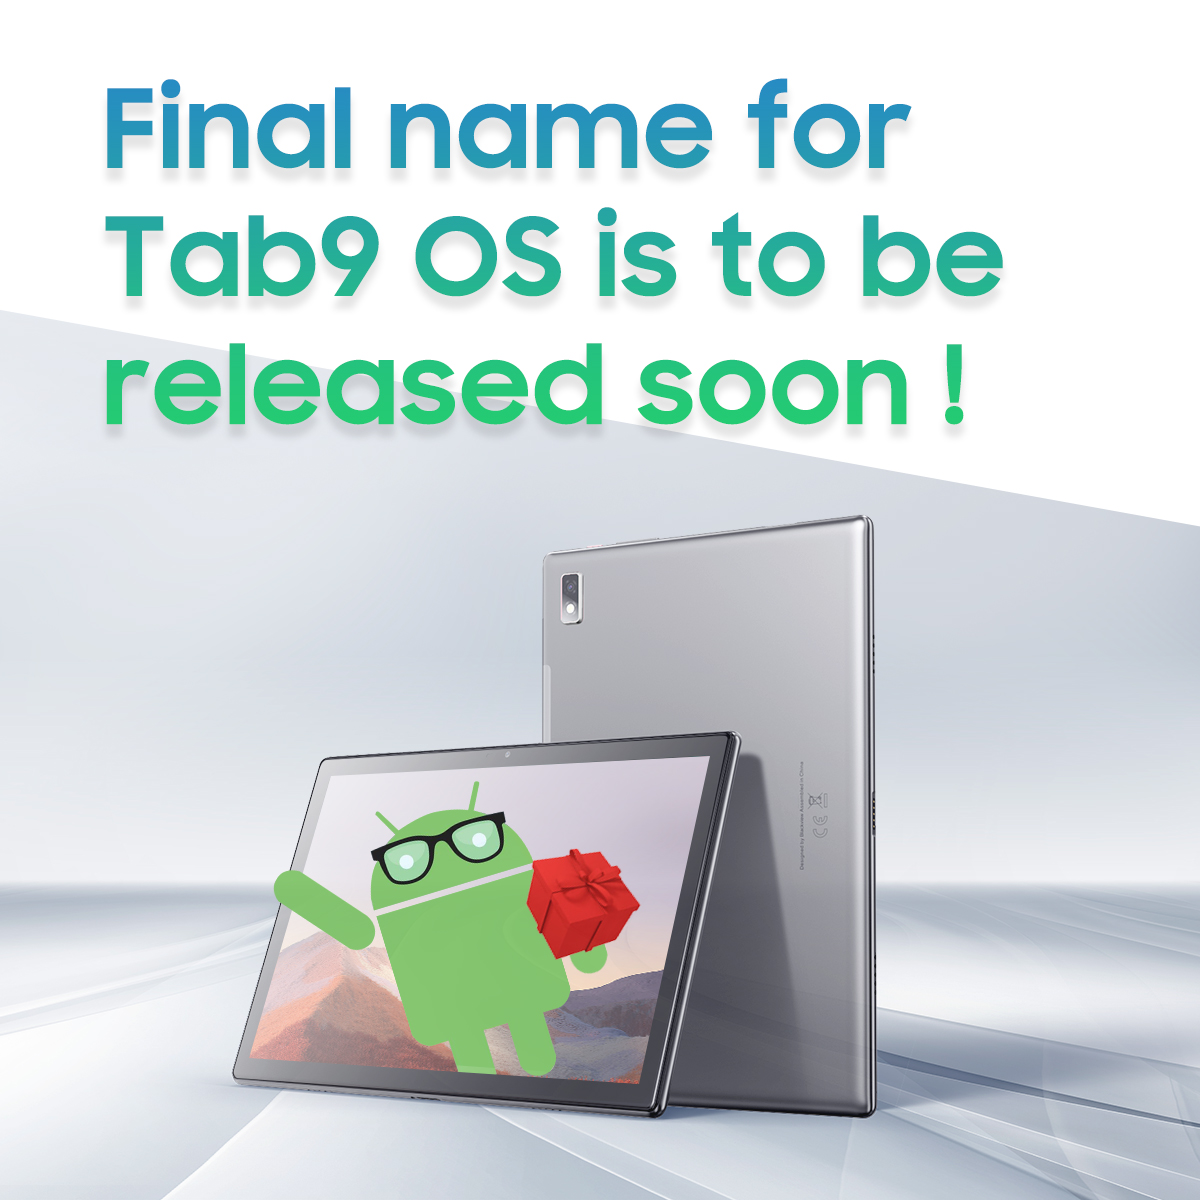 >> Regarding yesterday's winner announcement for #Blackview #Tab9 OS Naming Contest We're truly thankful for all the feedback after our announcement